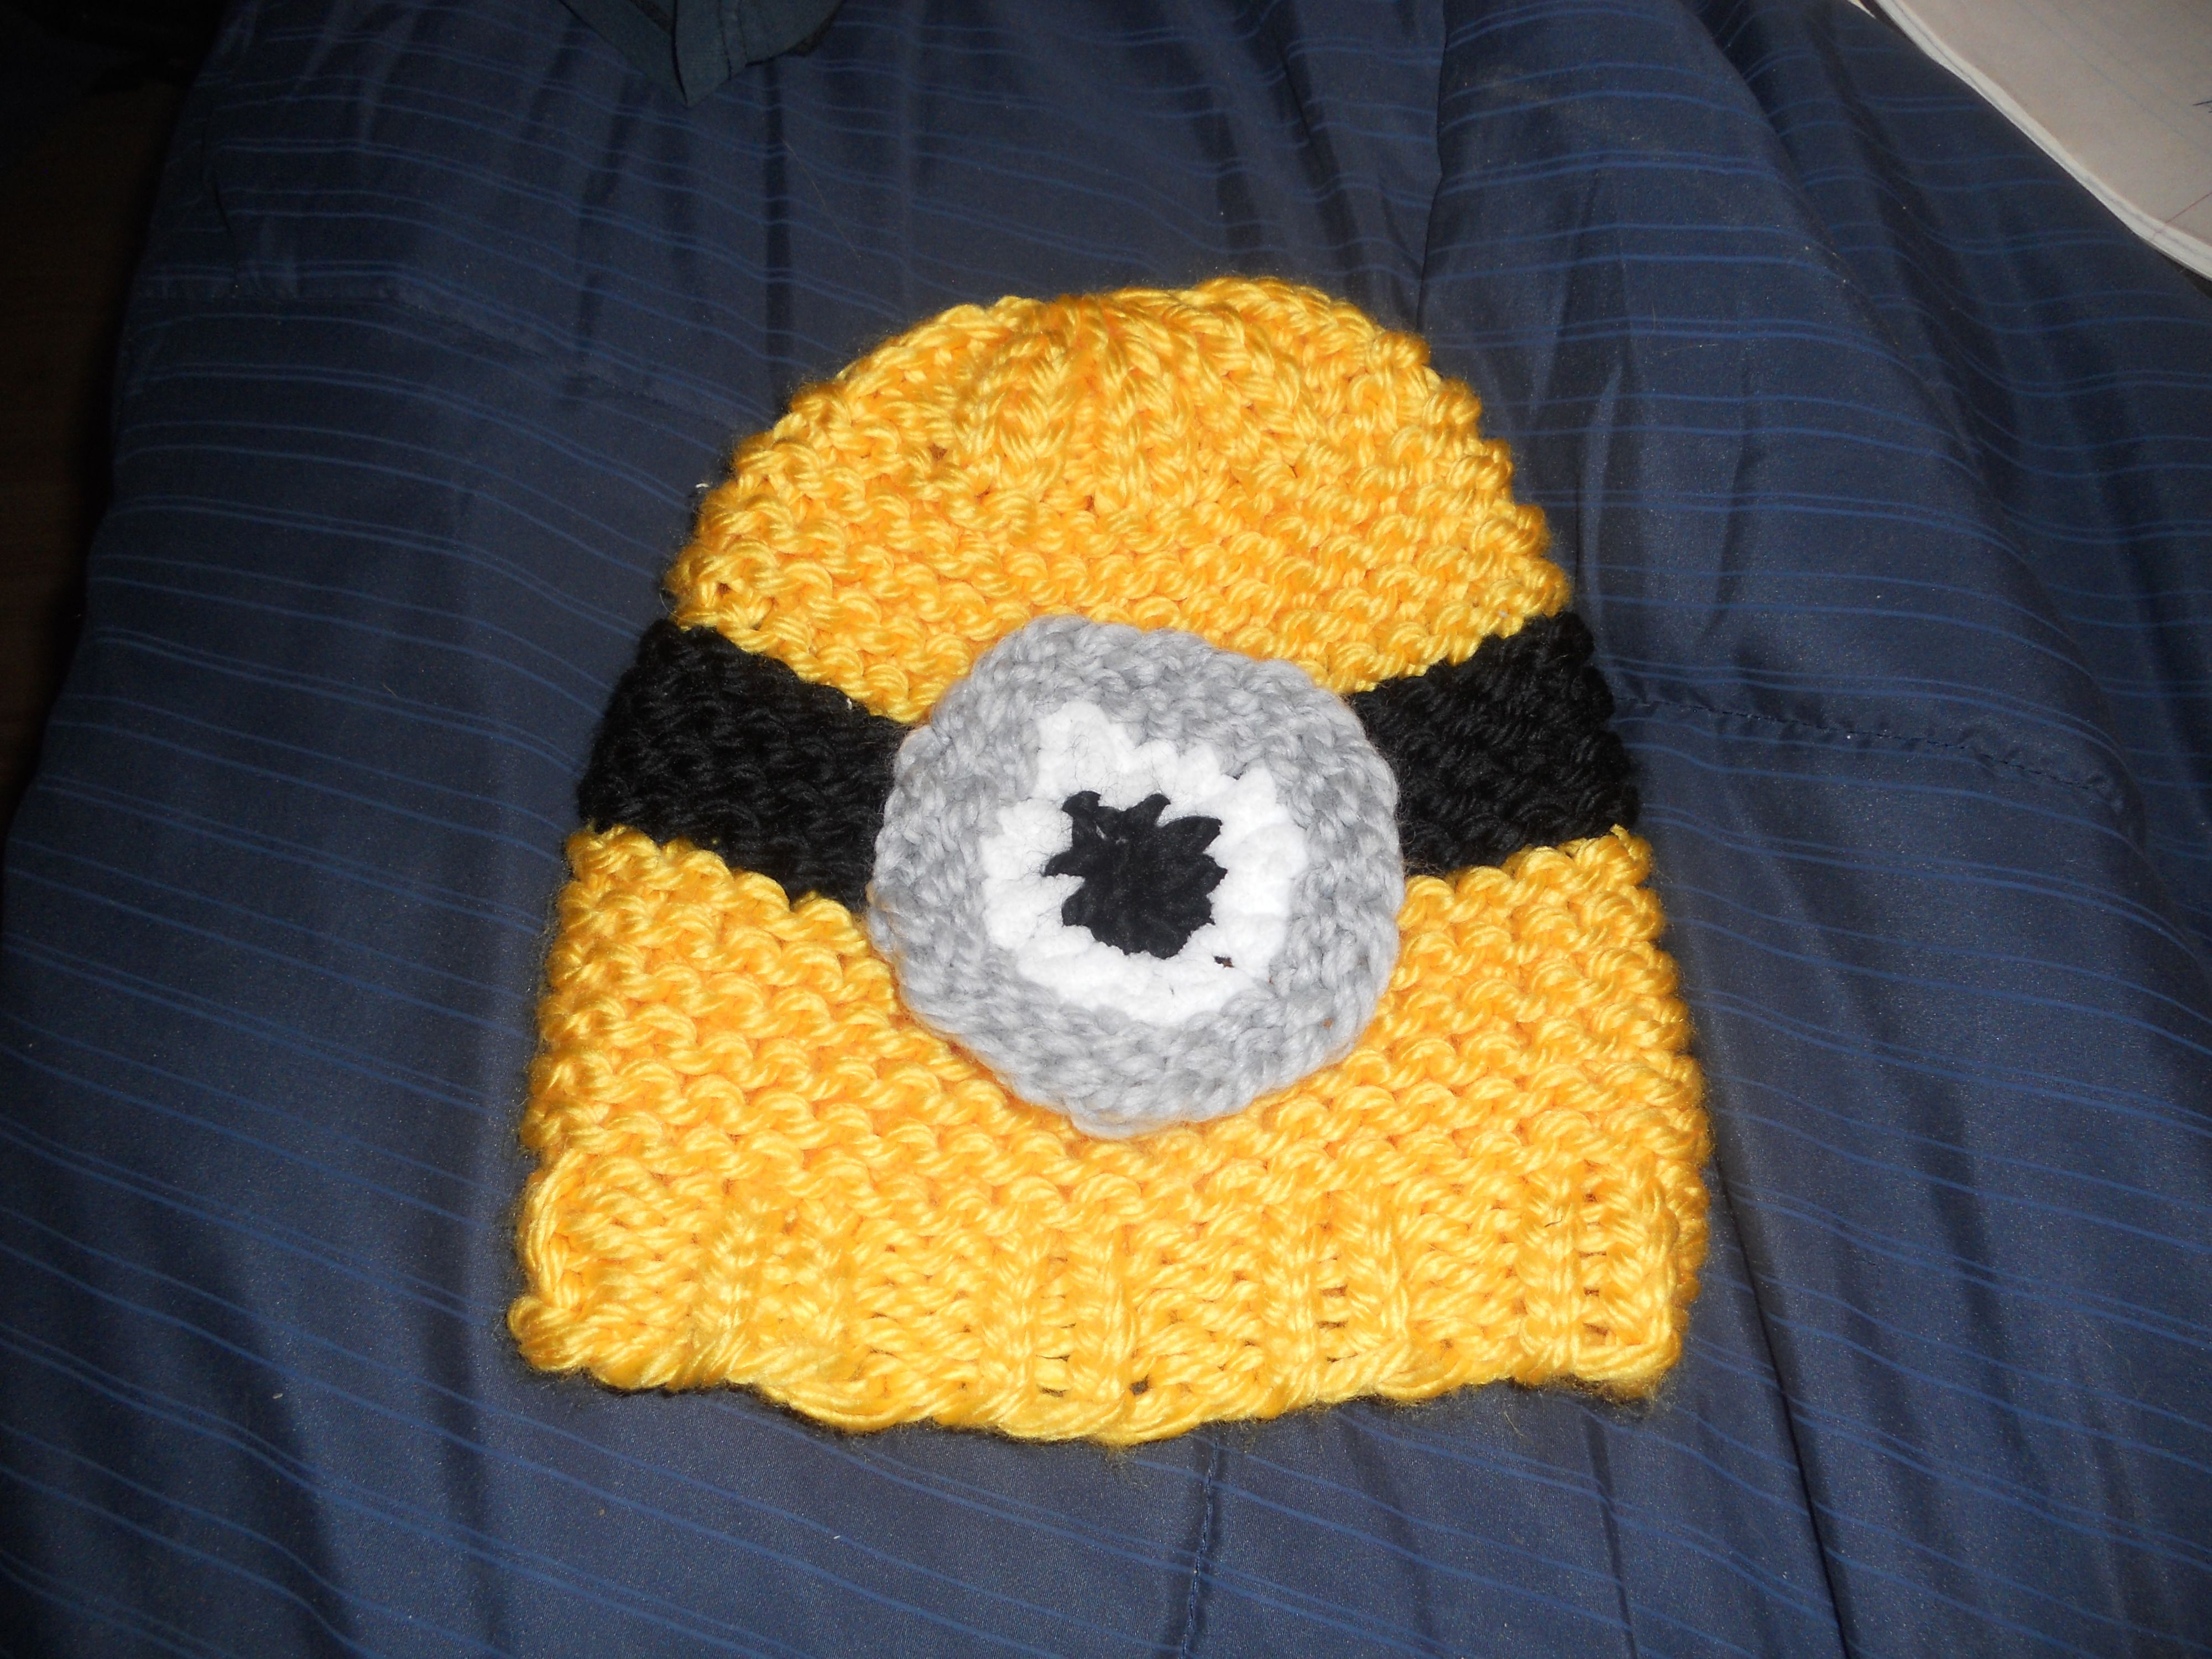 Loom knitted minion hat made by me knitting frenzy loom knitted minion hat made by me bankloansurffo Choice Image